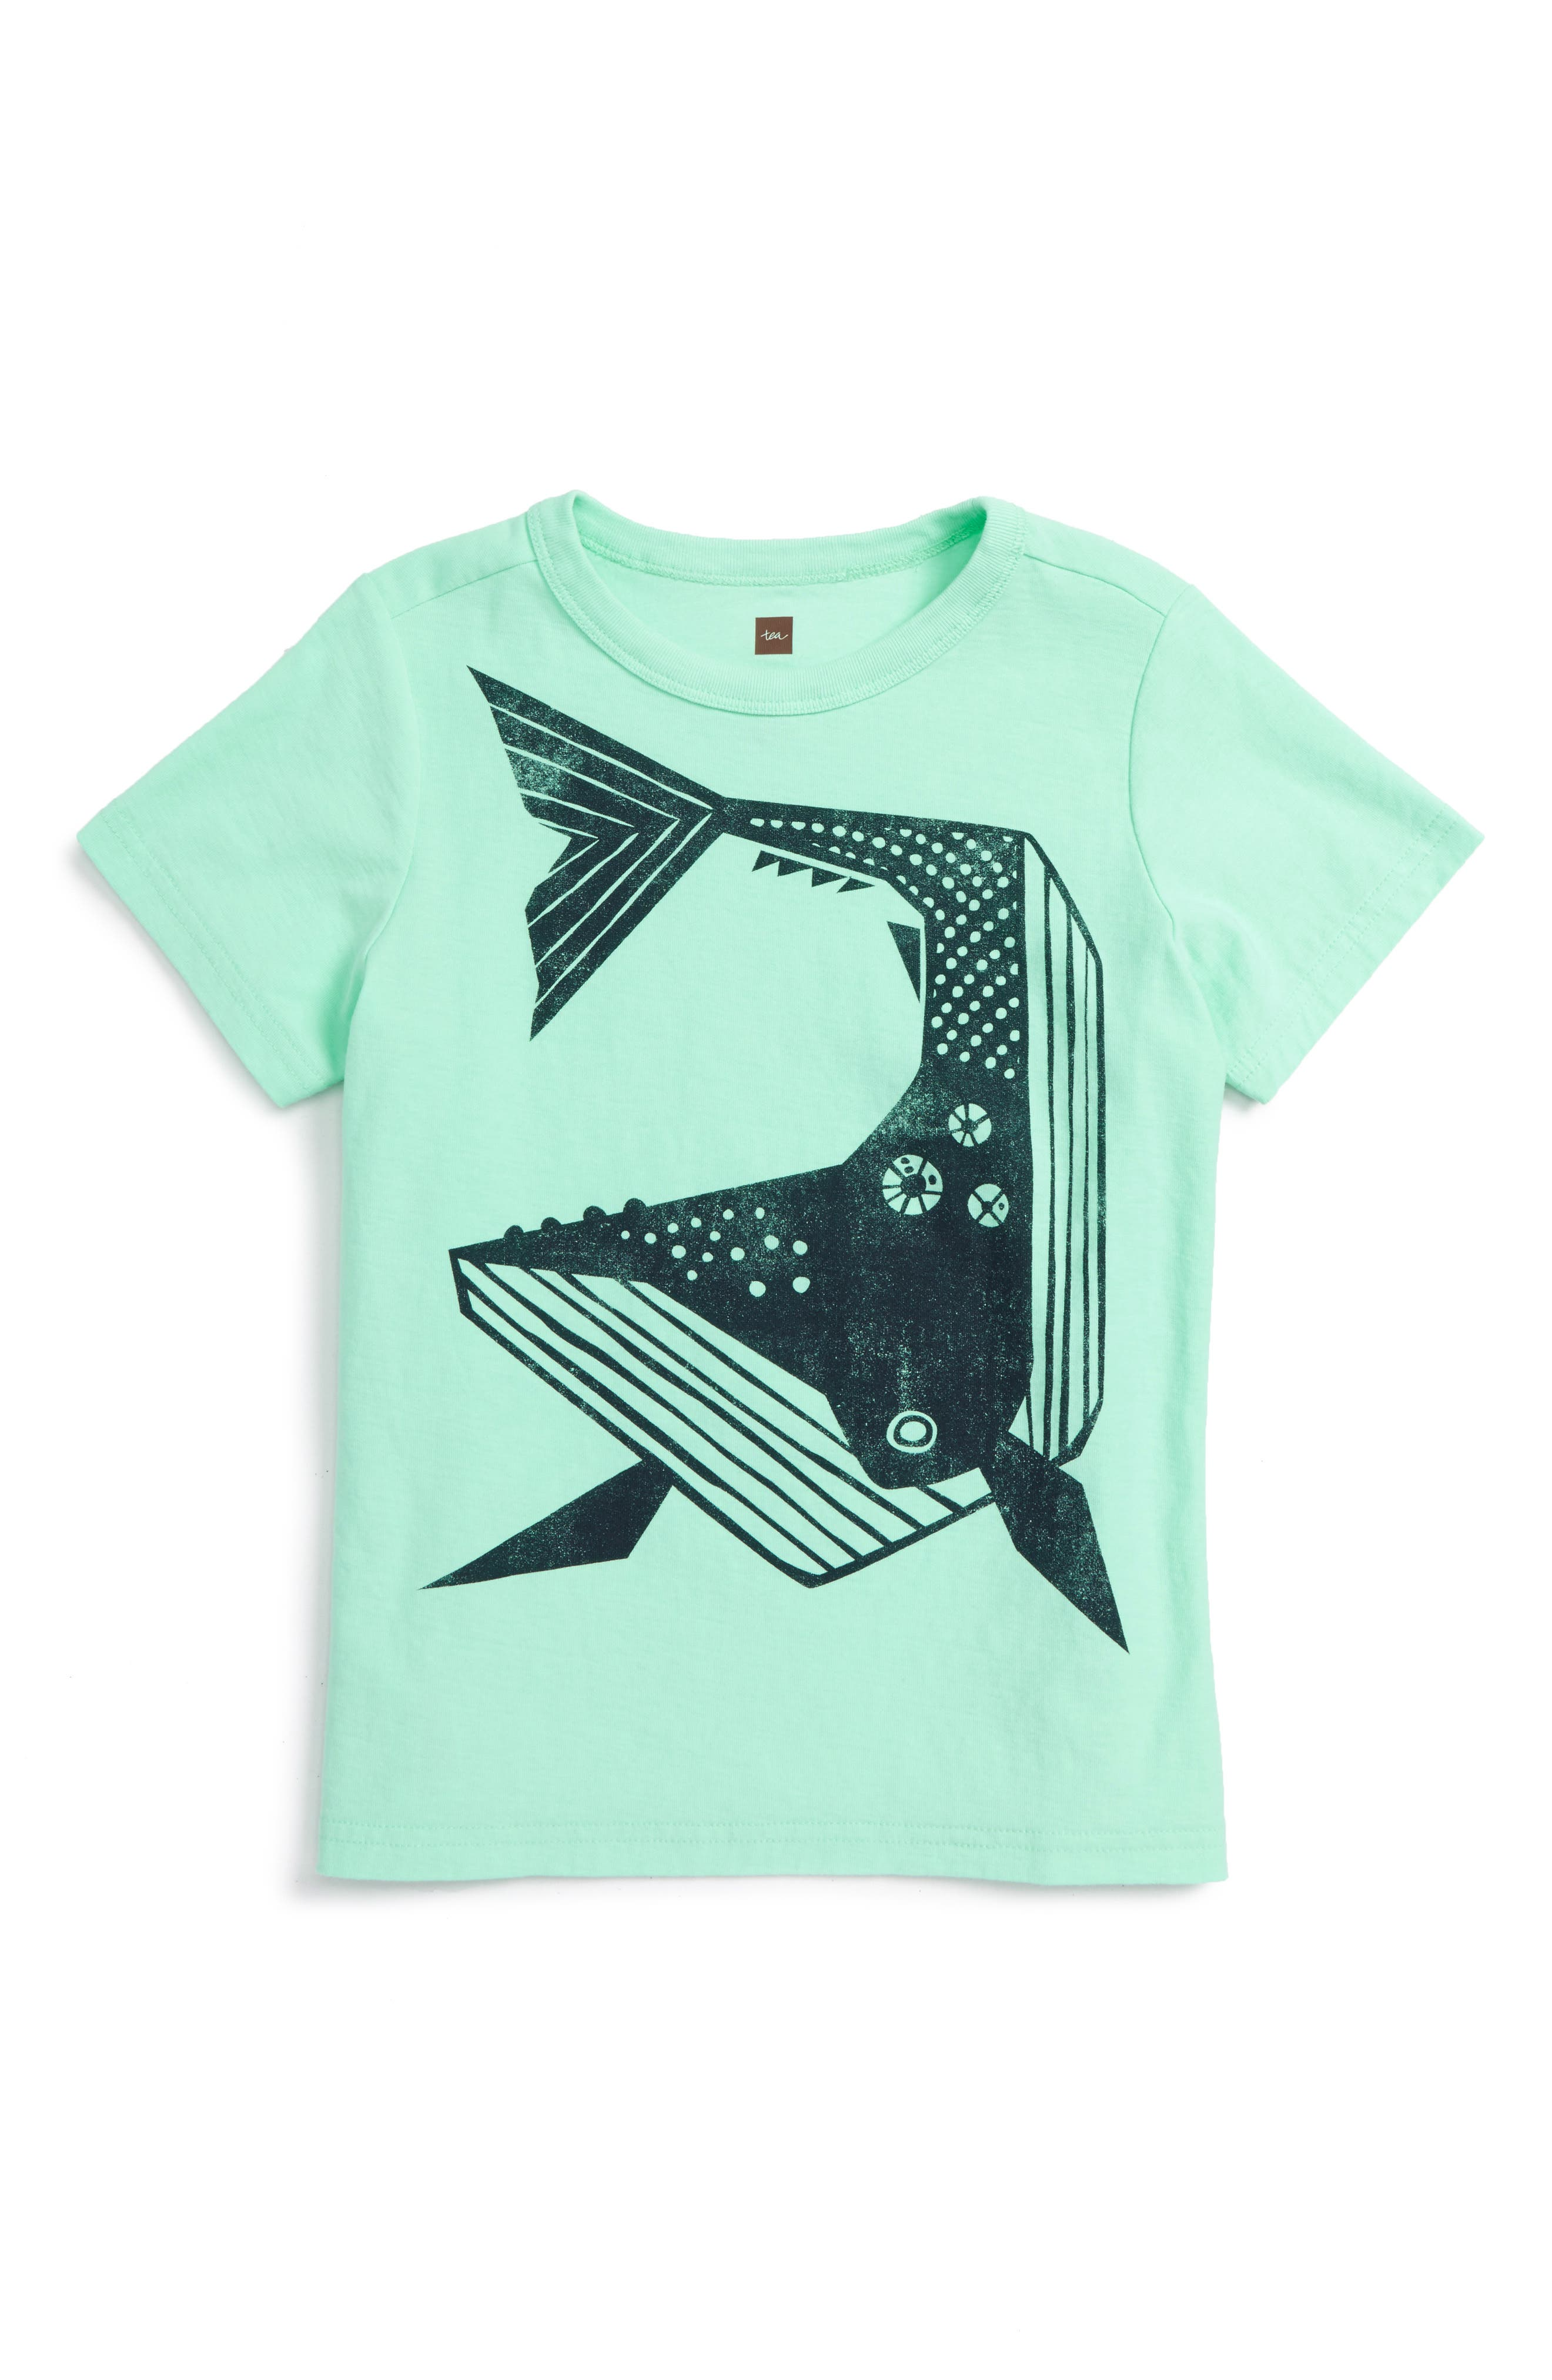 Alternate Image 1 Selected - Tea Collection Whale Then Graphic T-Shirt (Toddler Boys & Little Boys)